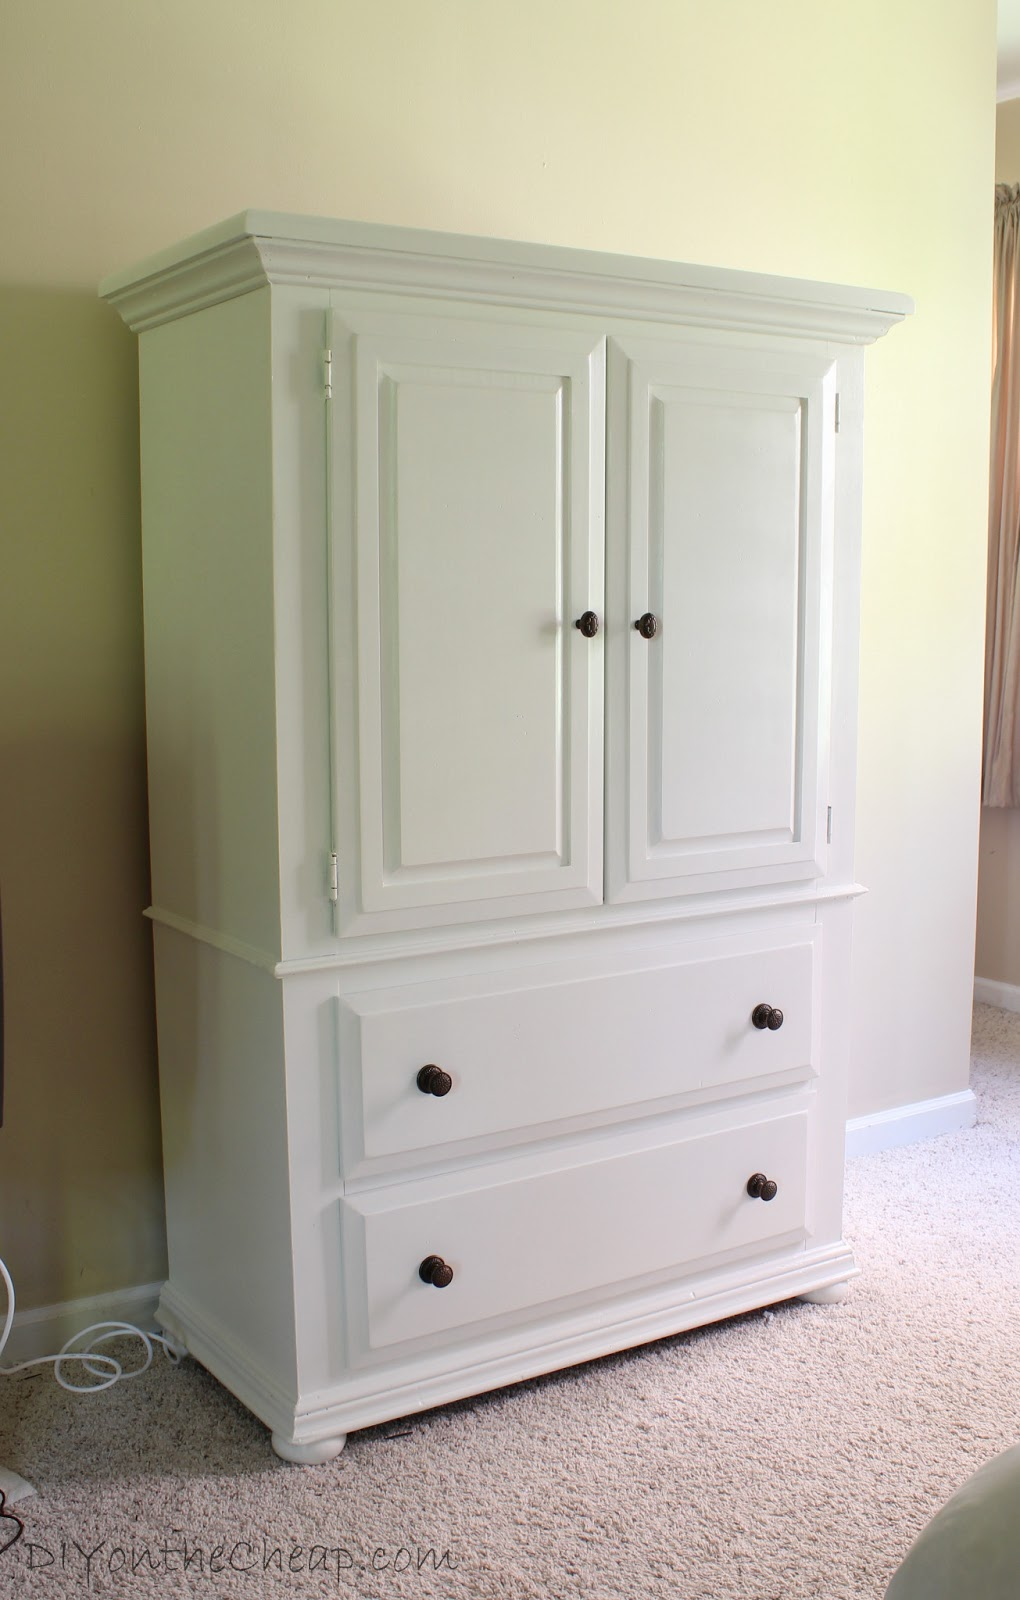 Armoire makeover master bedroom progress report erin for Armoire tv